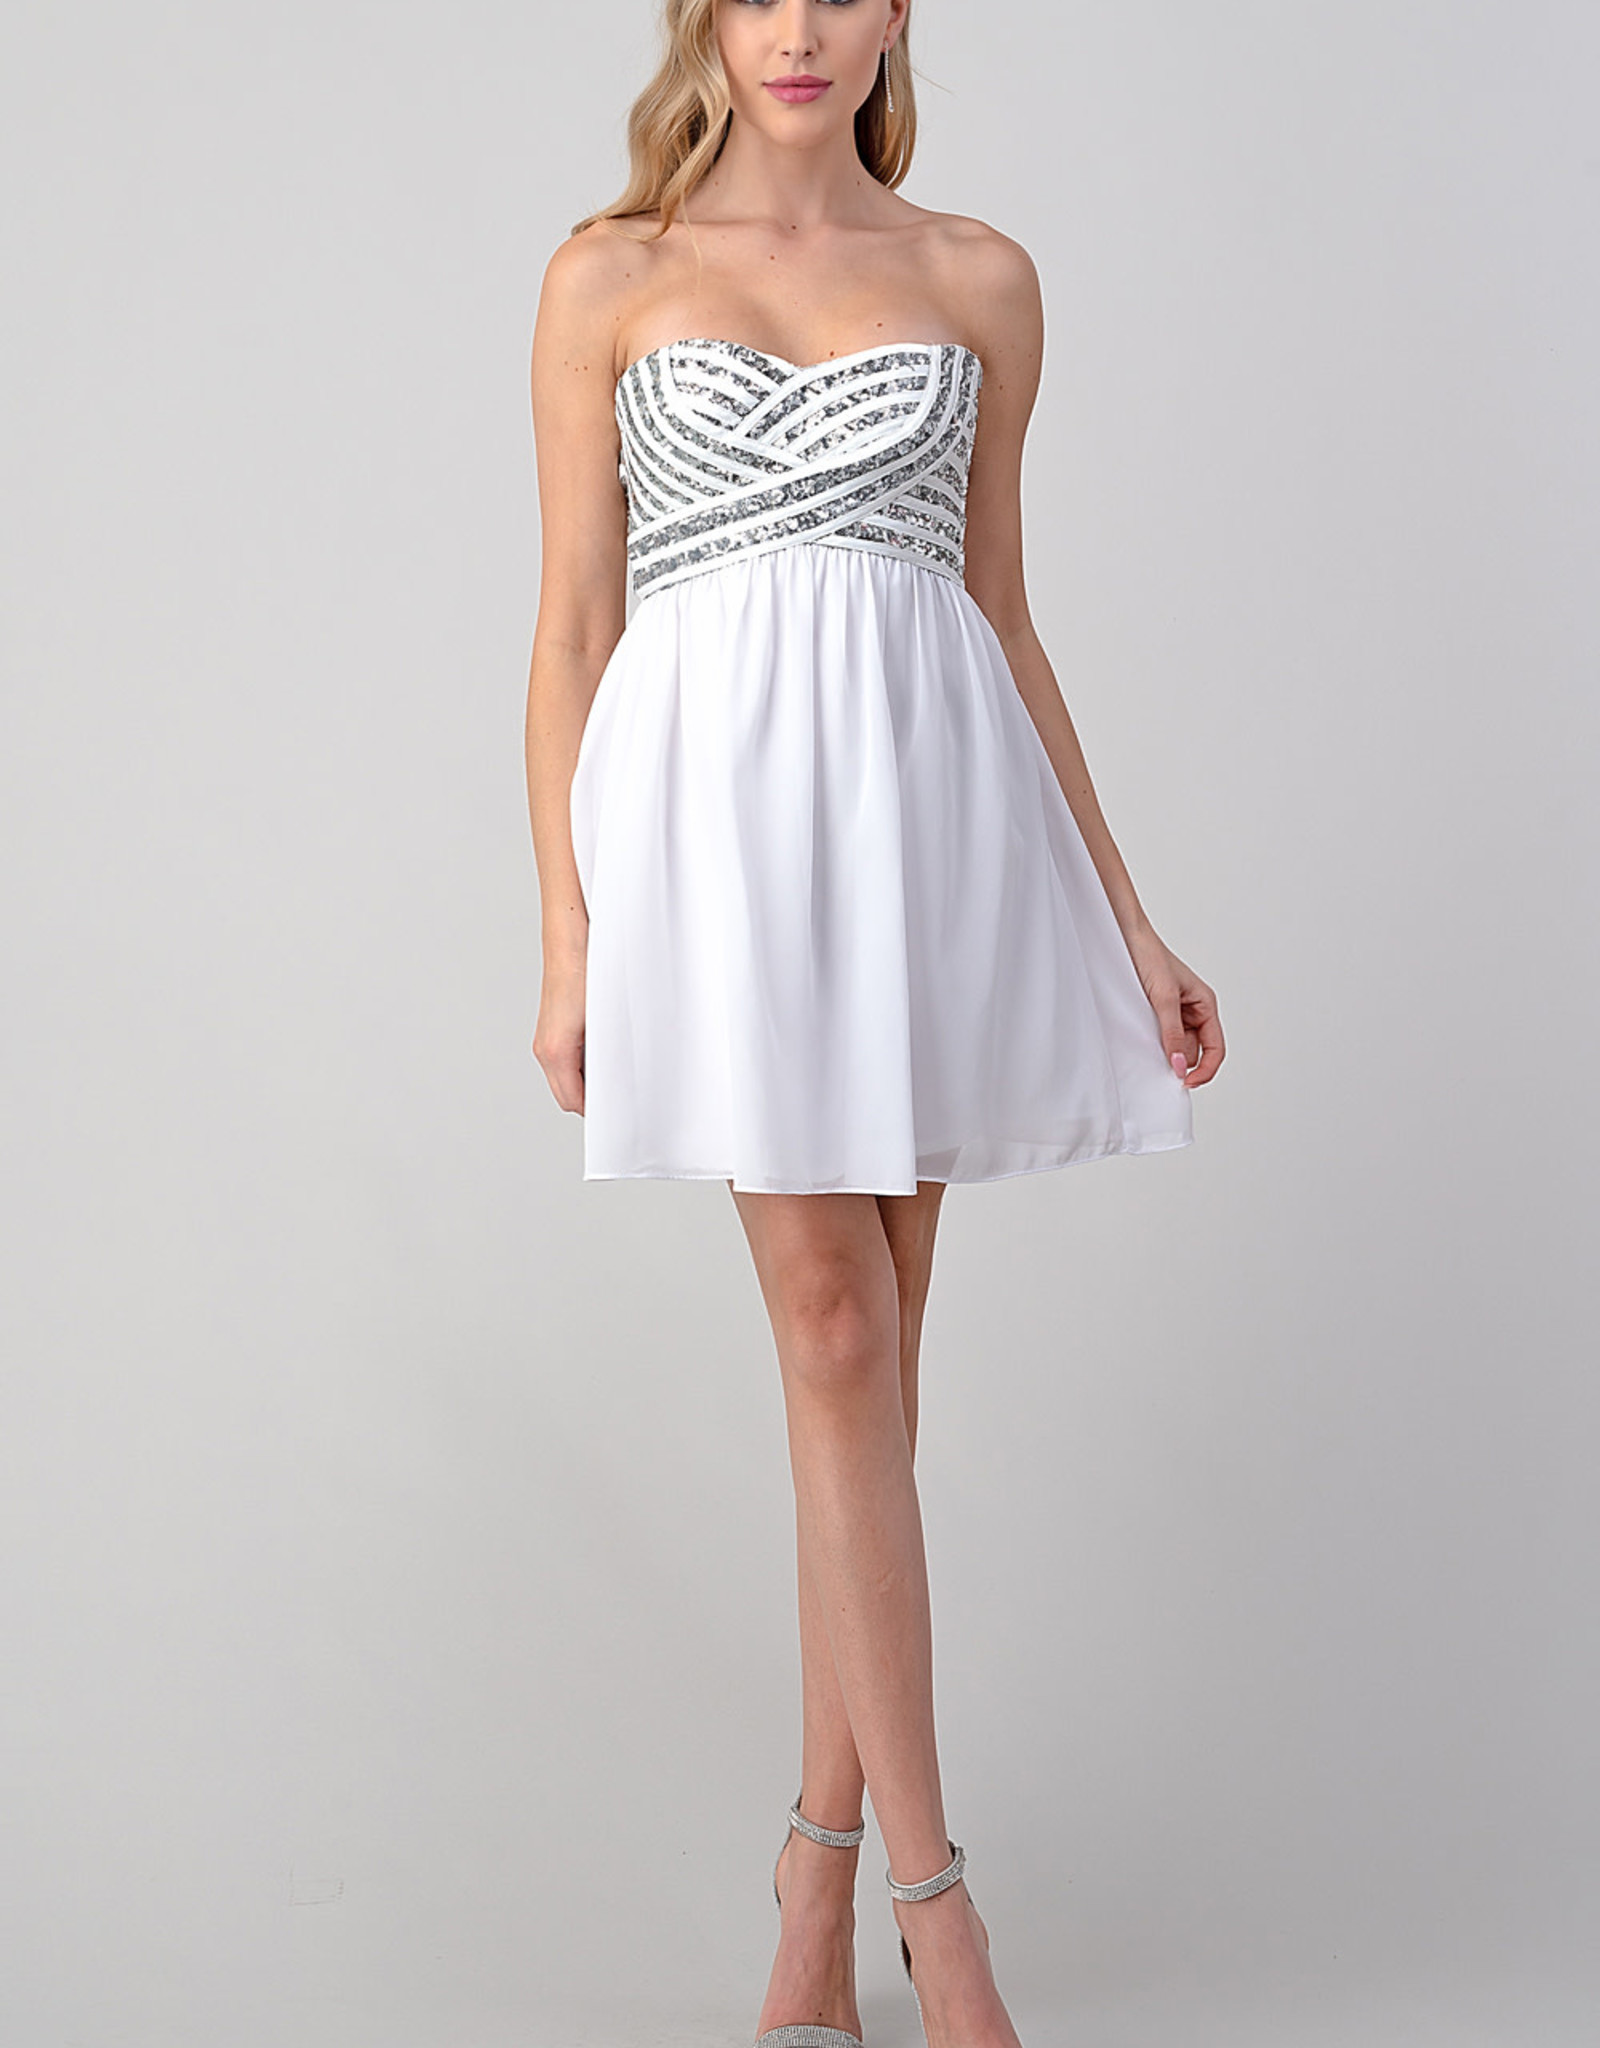 Minuet Silver Sequins White Dress